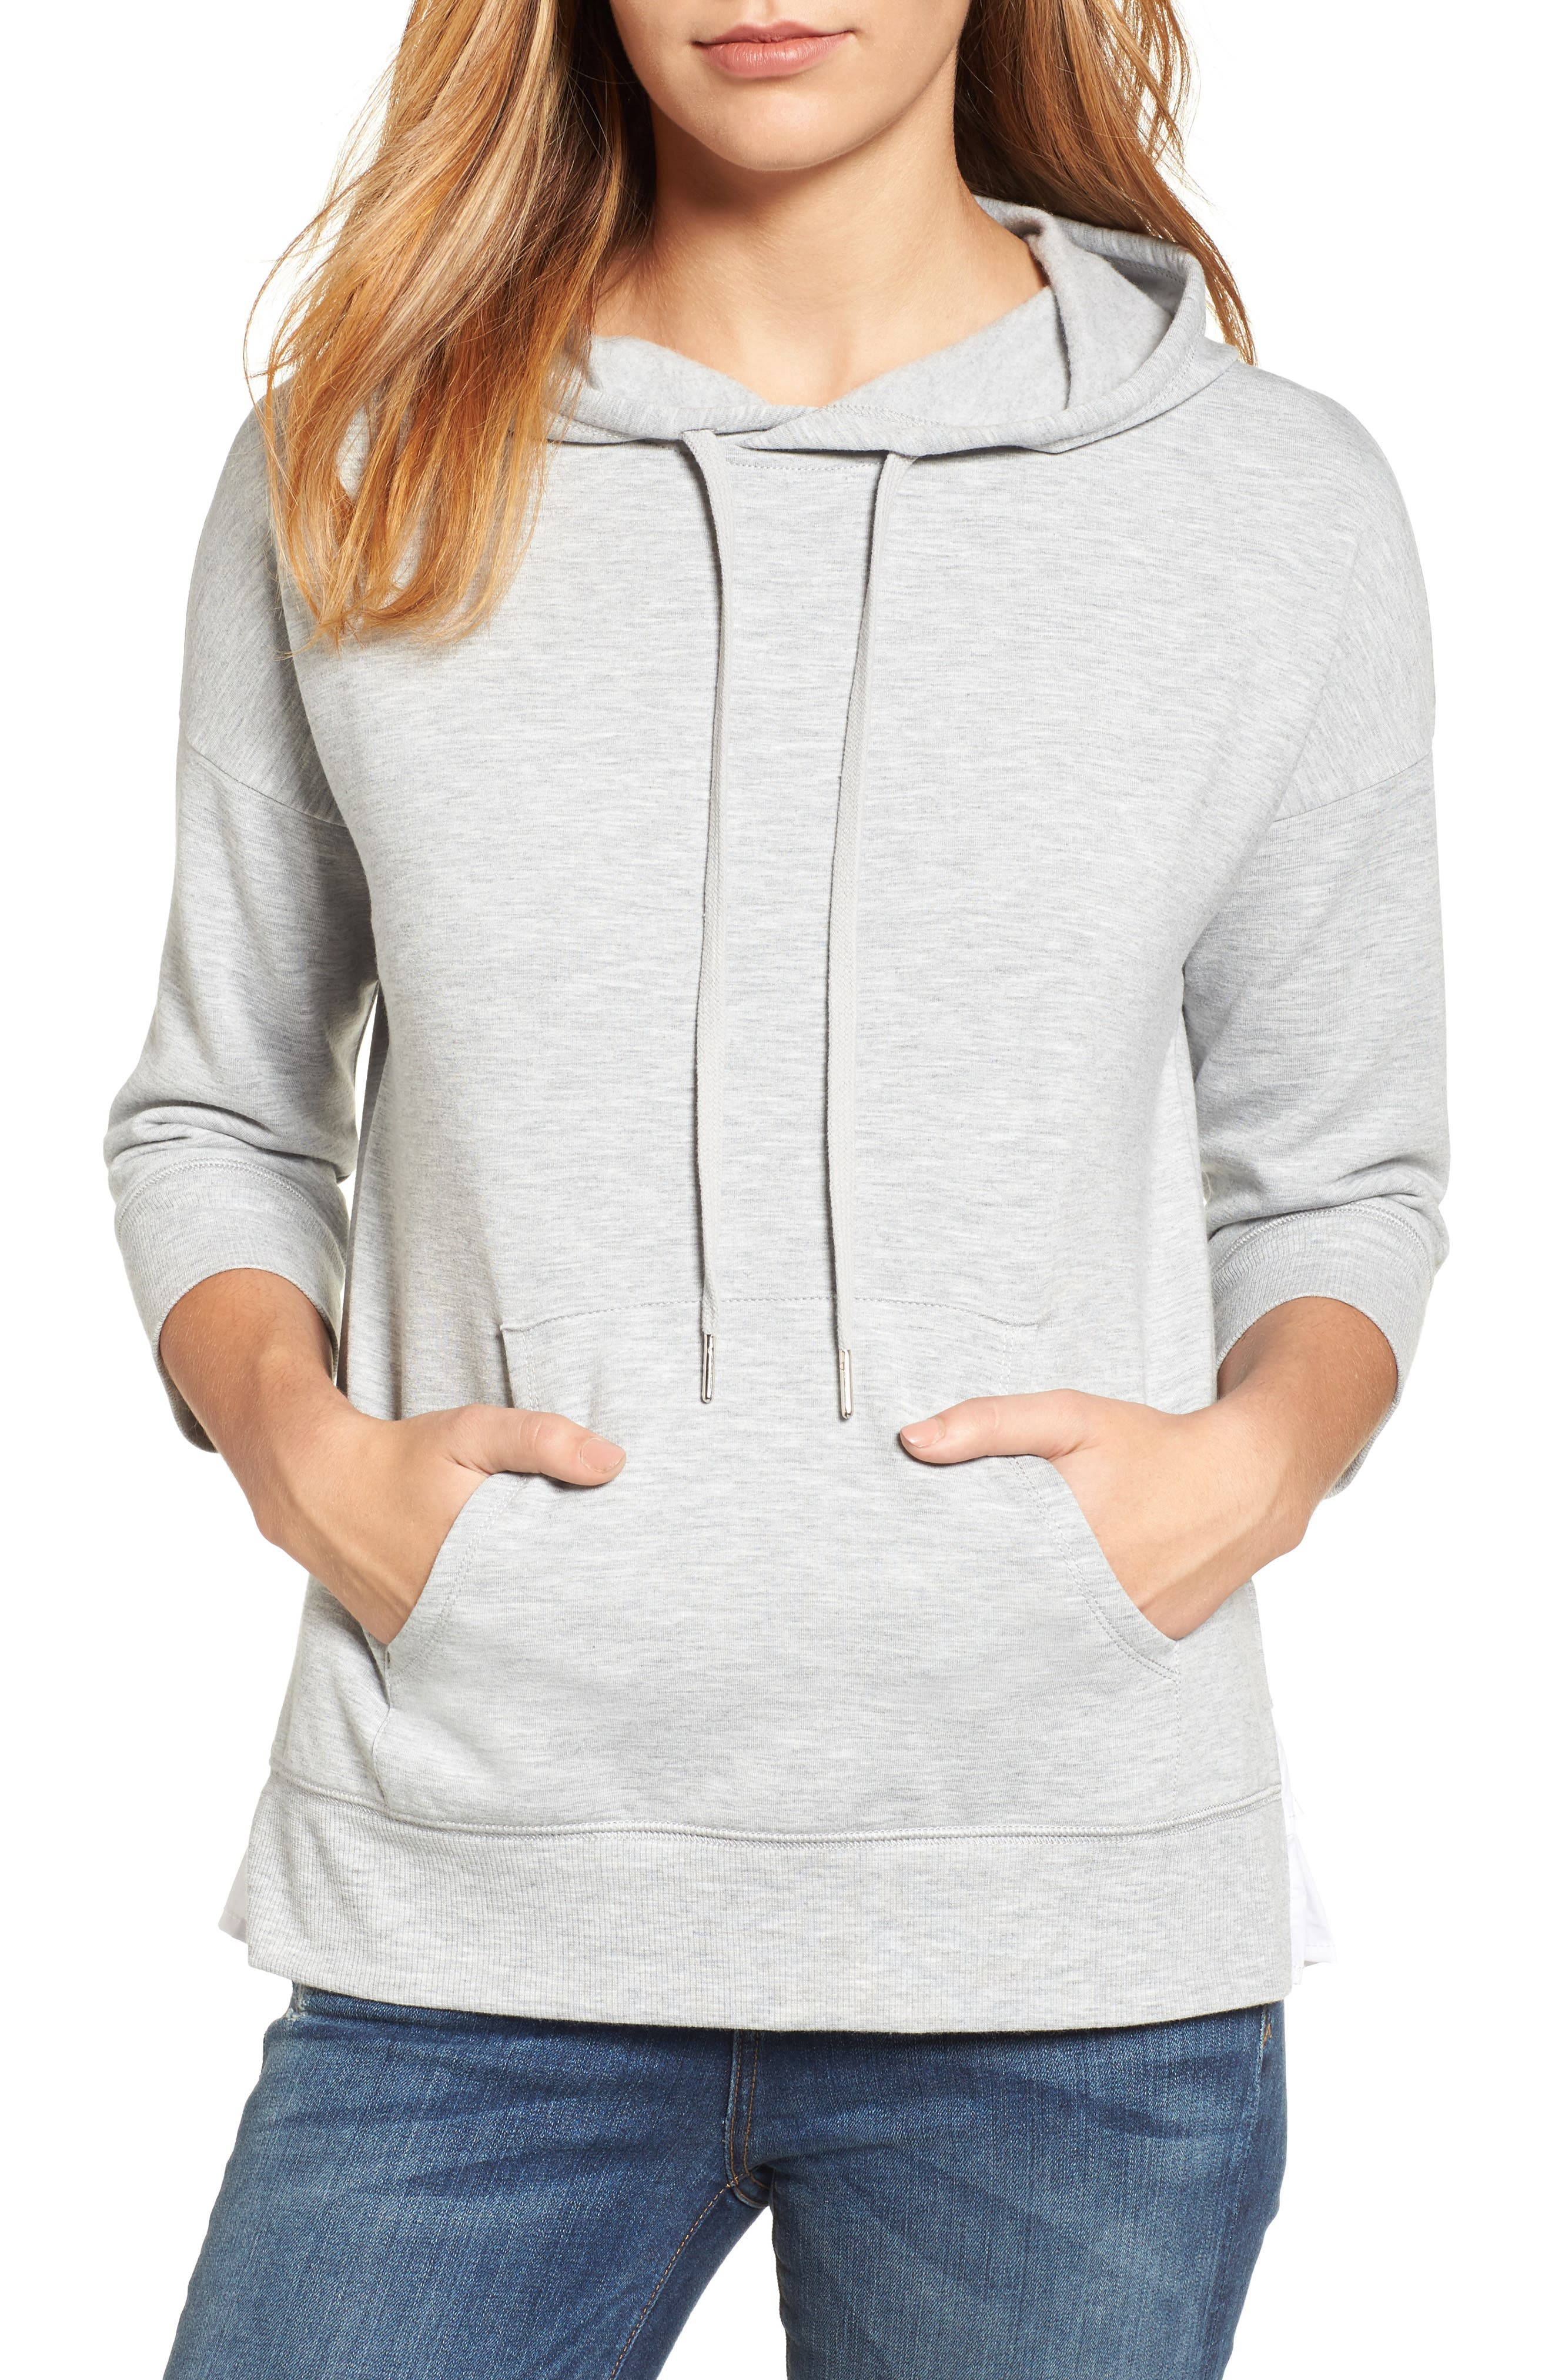 Woven Inset Knit Hoodie,                         Main,                         color, Heather Grey